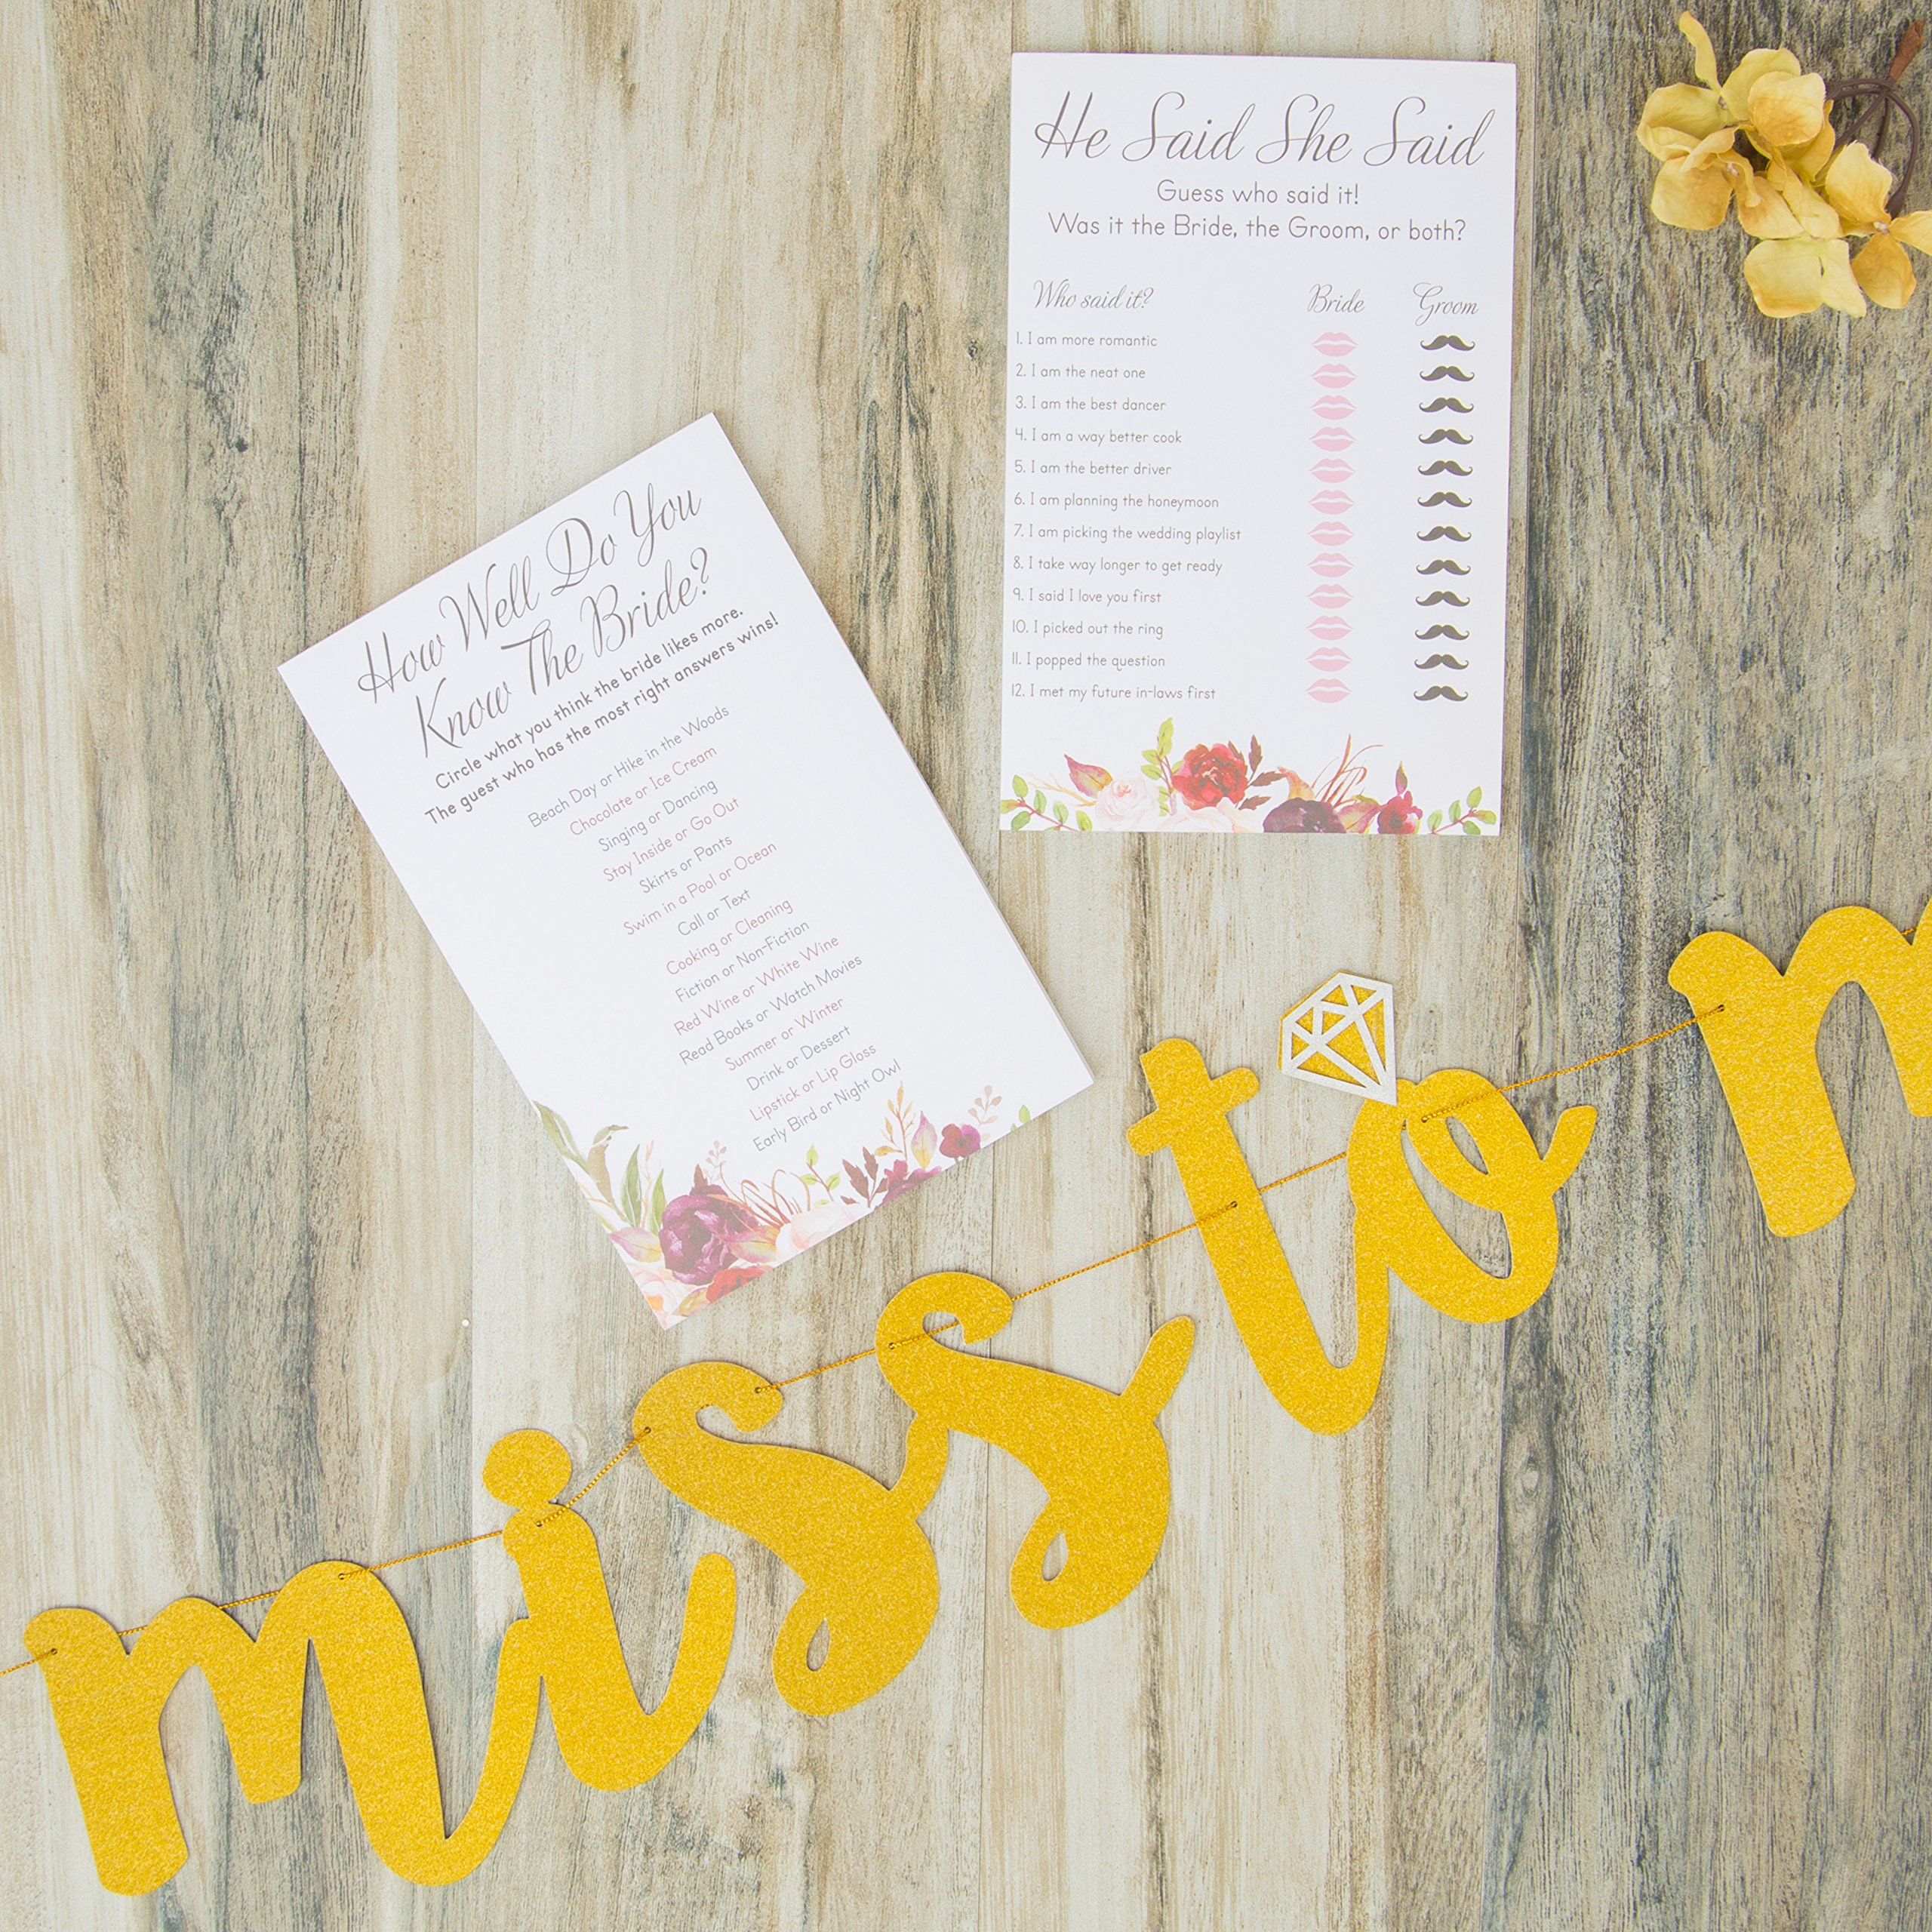 Bridal Shower Games pack with Bonus Miss to Mrs Banner (GOLD), Dots and Wedding Advice Cards | 3 Games - What's On Your Phone, He Said She Said, How Well Do You Know The Bride(50 Sheets each) by Planet Mango (Image #4)